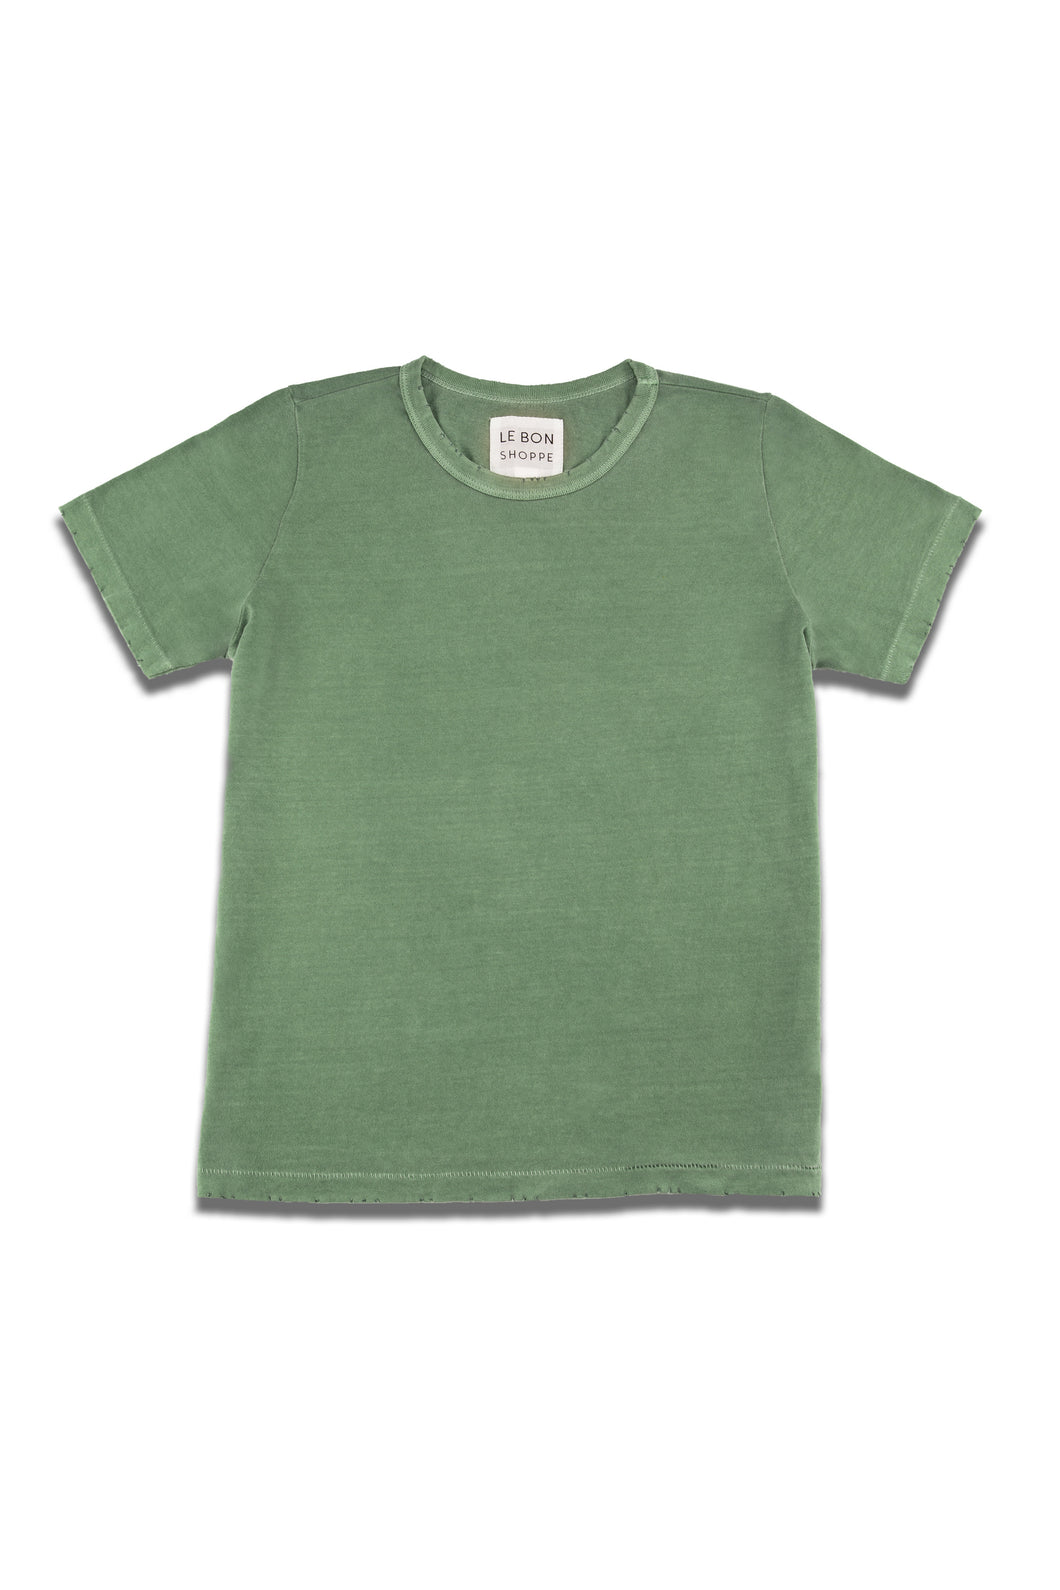 Avocado Vintage Boy Tee - Made with Organic Cotton